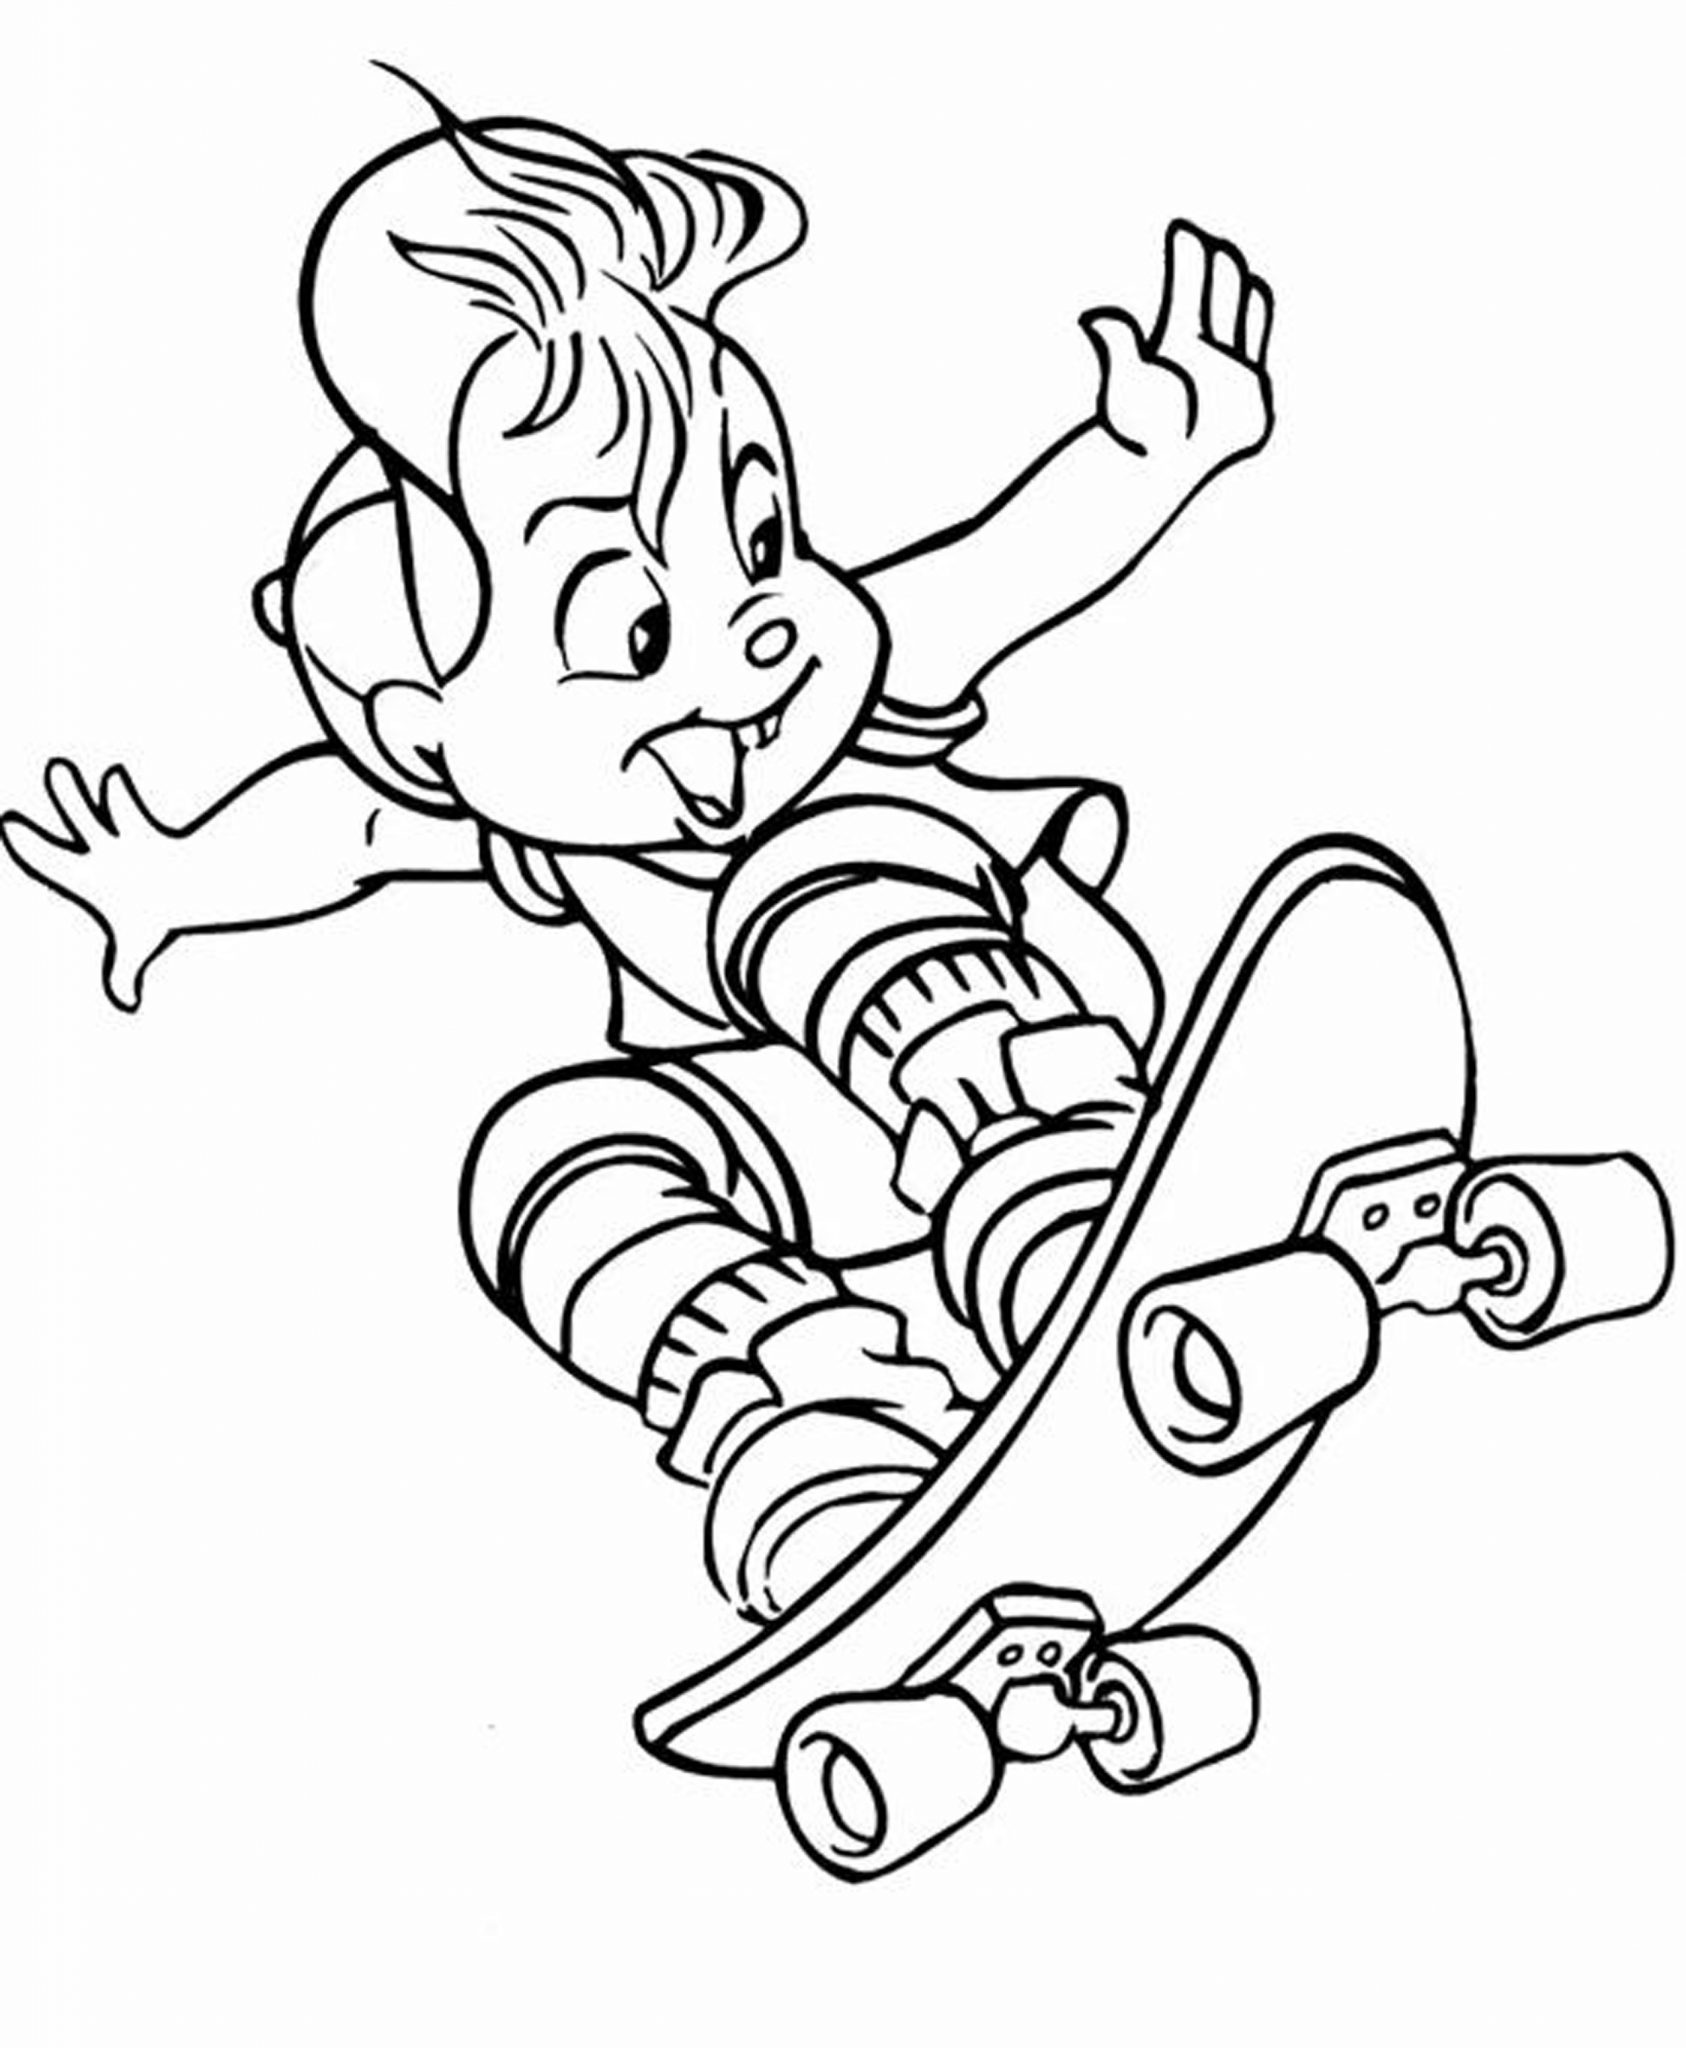 coloring sheet boy coloring pages for boys training shopping for children coloring sheet boy 1 1